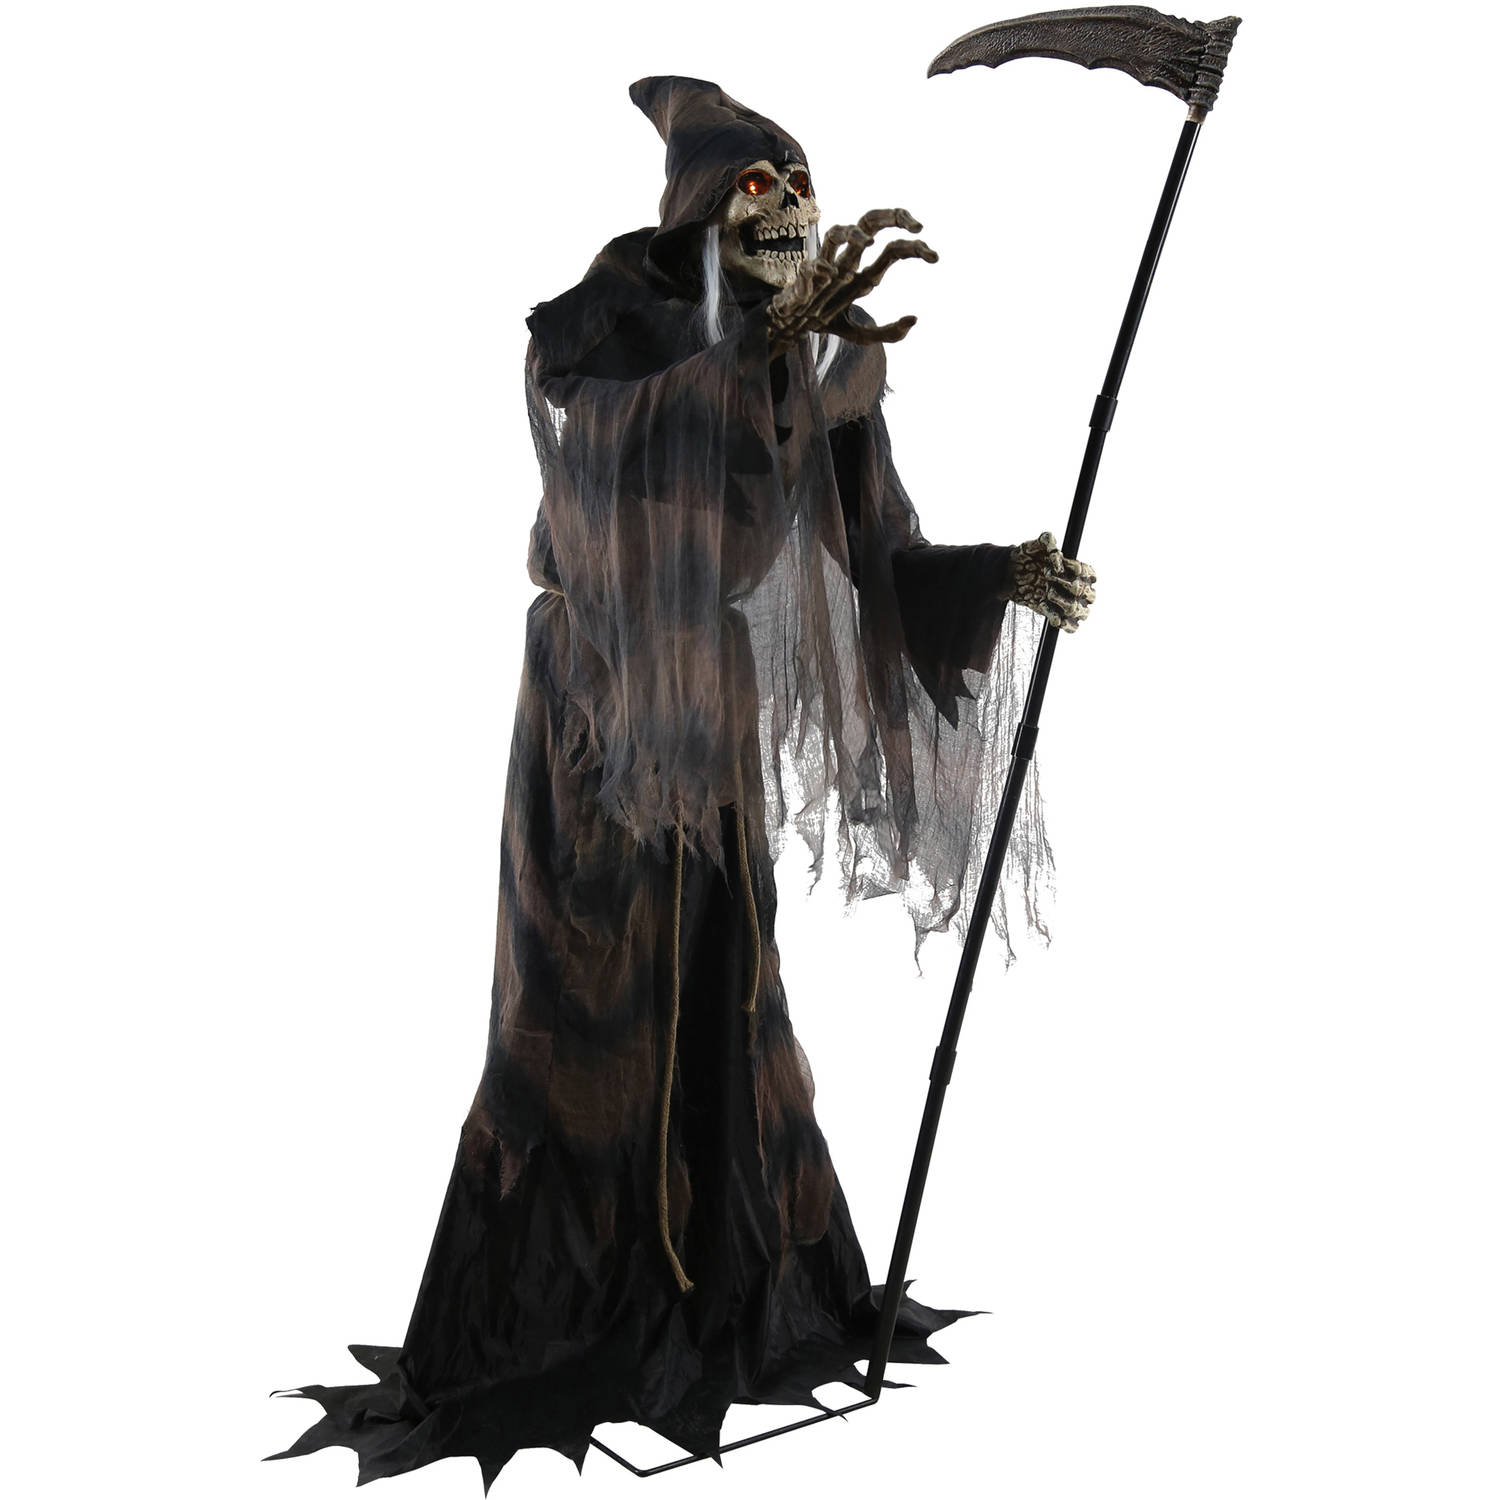 lunging reaper animated prop halloween decoration walmartcom - Animated Halloween Decorations